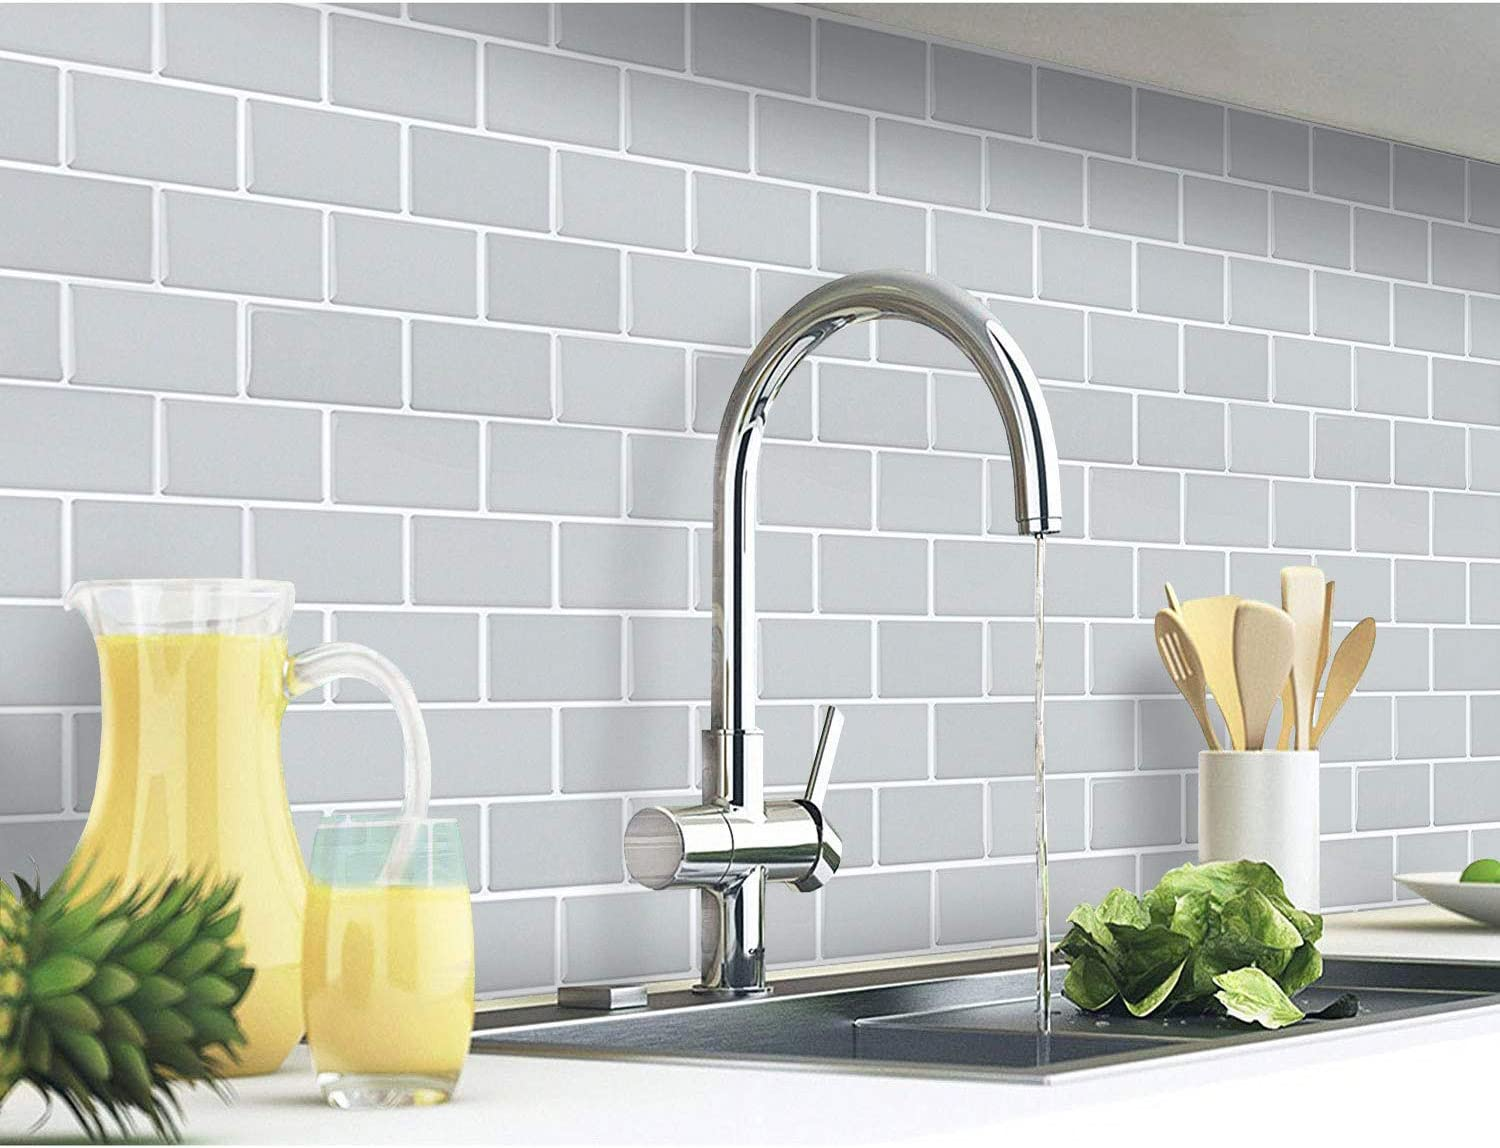 Yoillione pack of 9 9D tile stickers for bathroom kitchen ...